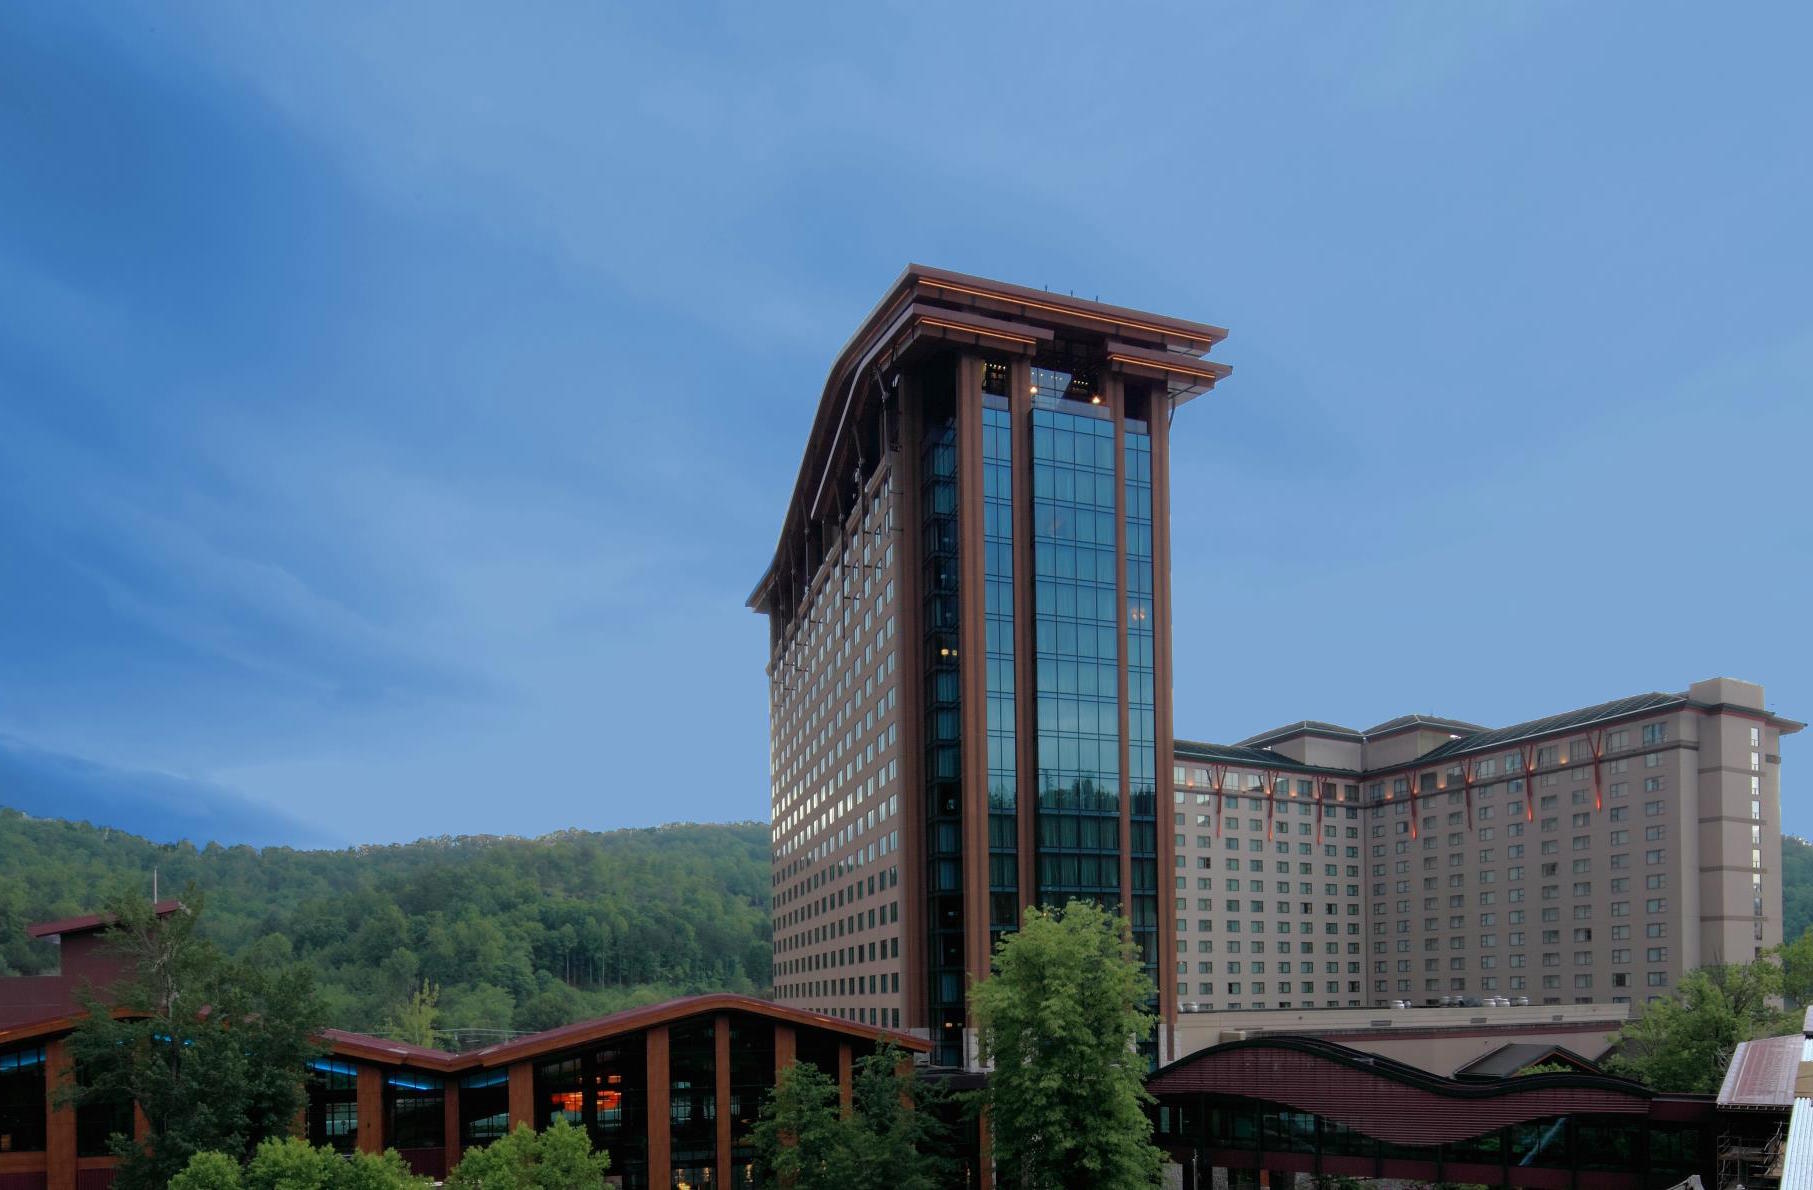 Eastern Cherokees remove three gaming regulators after dispute